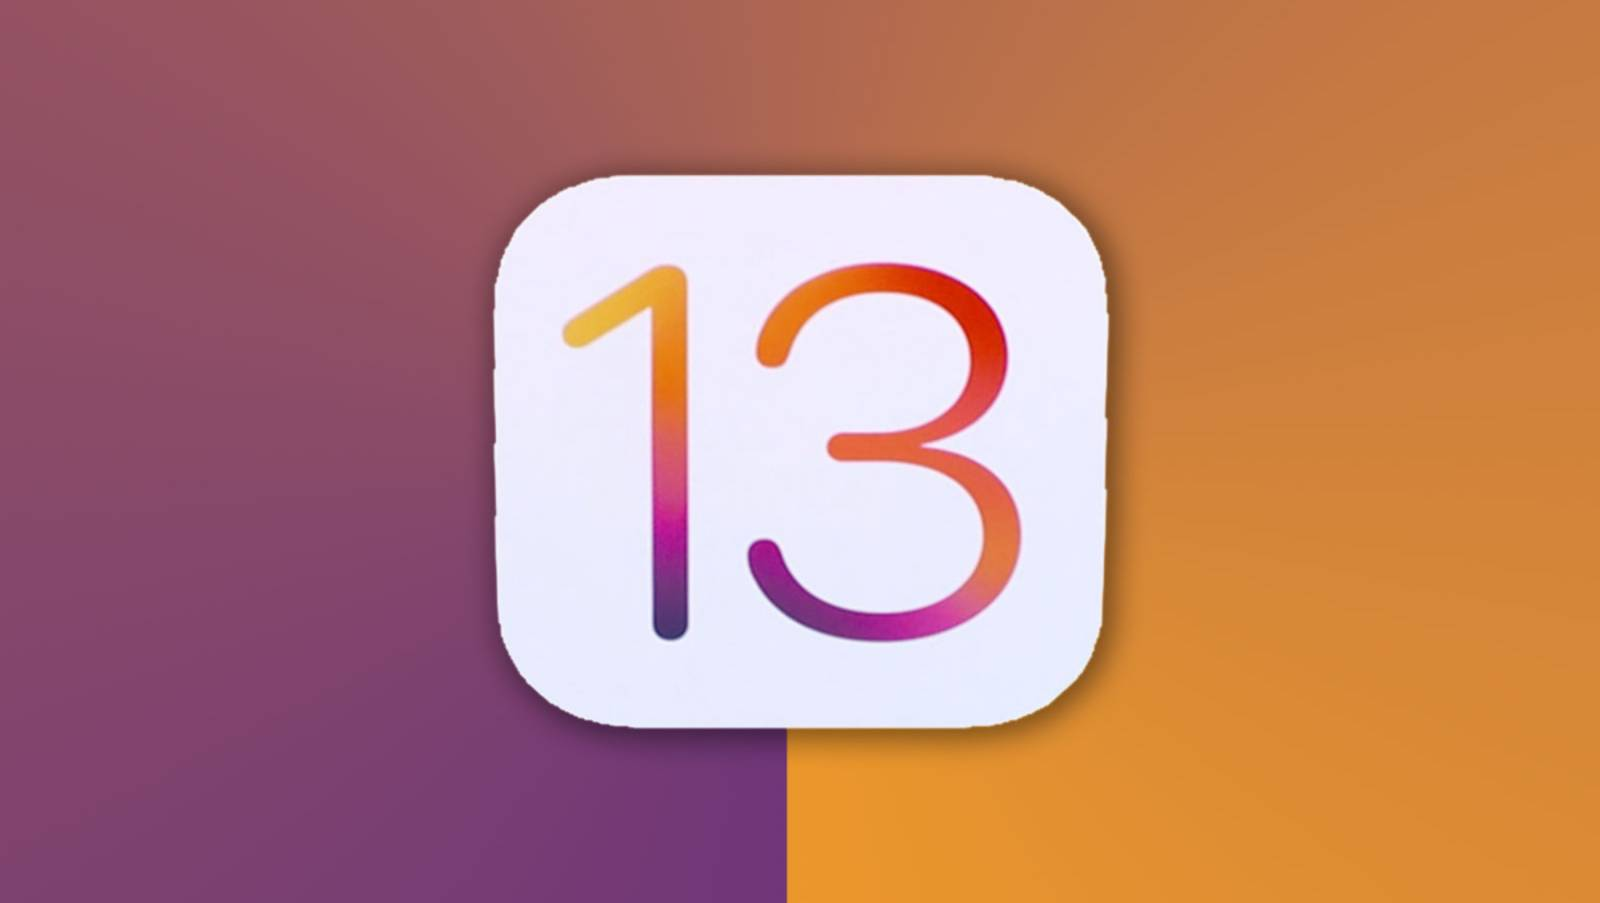 iOS 13 xbox one s ps4 iphone